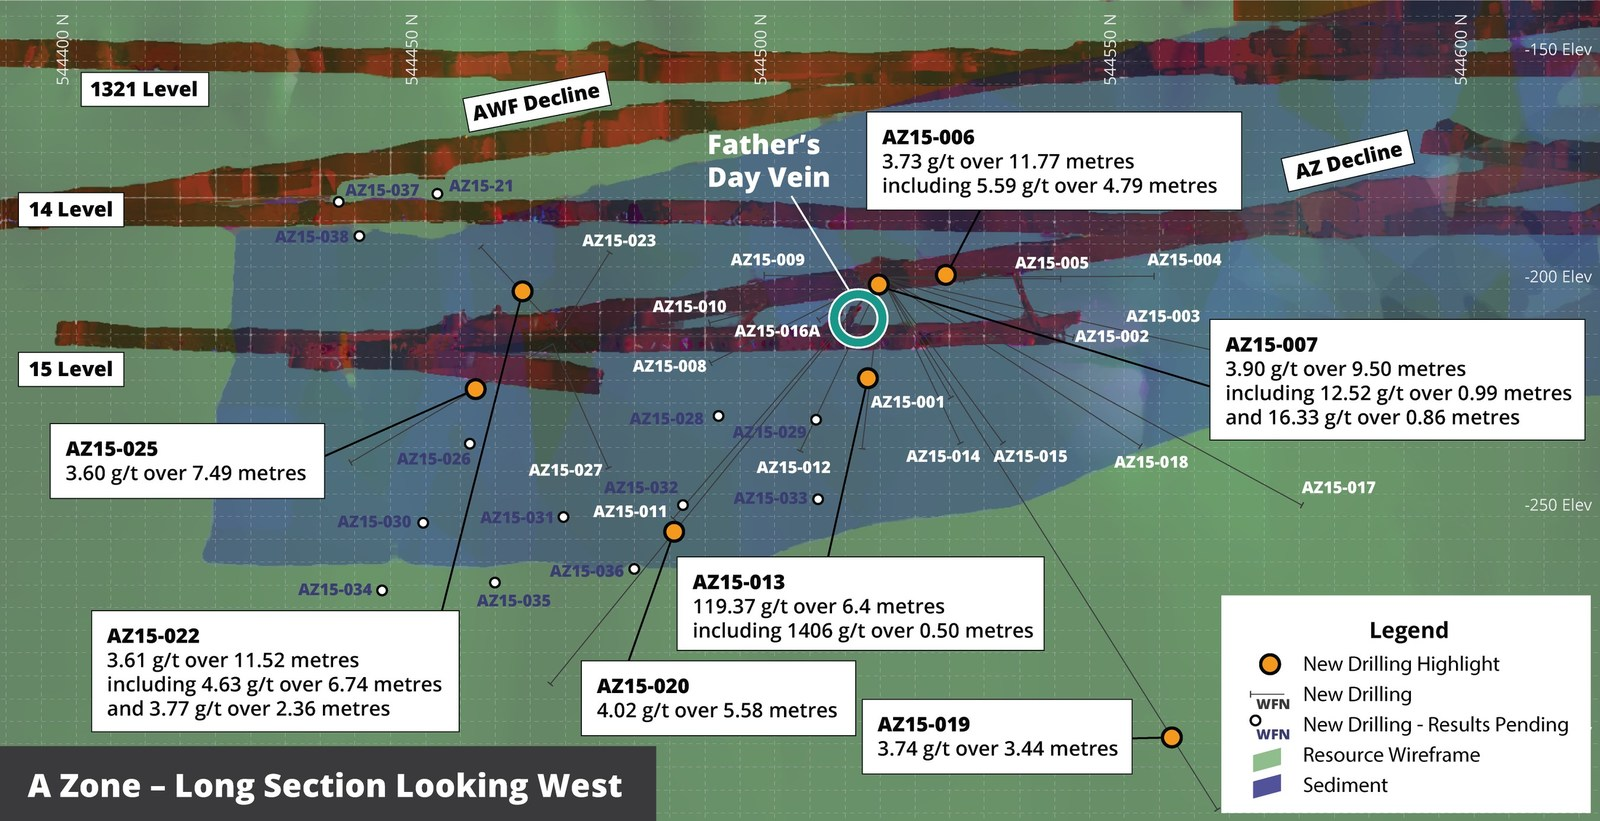 Figure 3 – A Zone Long Section looking West showing current drilling pierce points and selected intersections of the A Zone shear